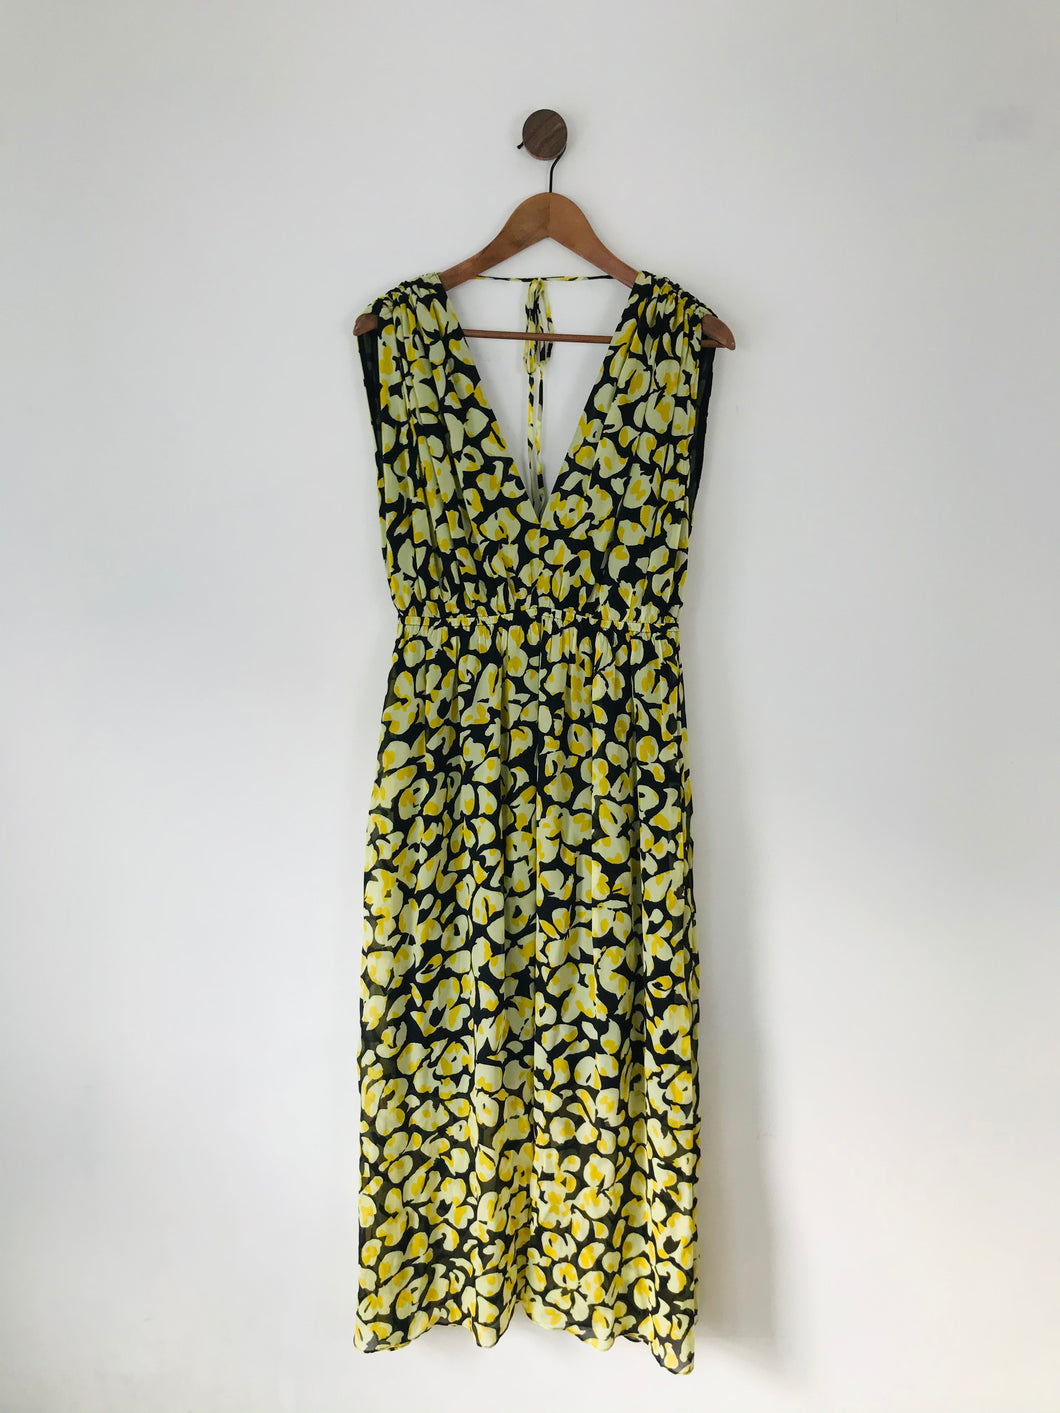 & Other Stories Women's Floral Gathered Maxi Dress | UK10 EU38 | Yellow